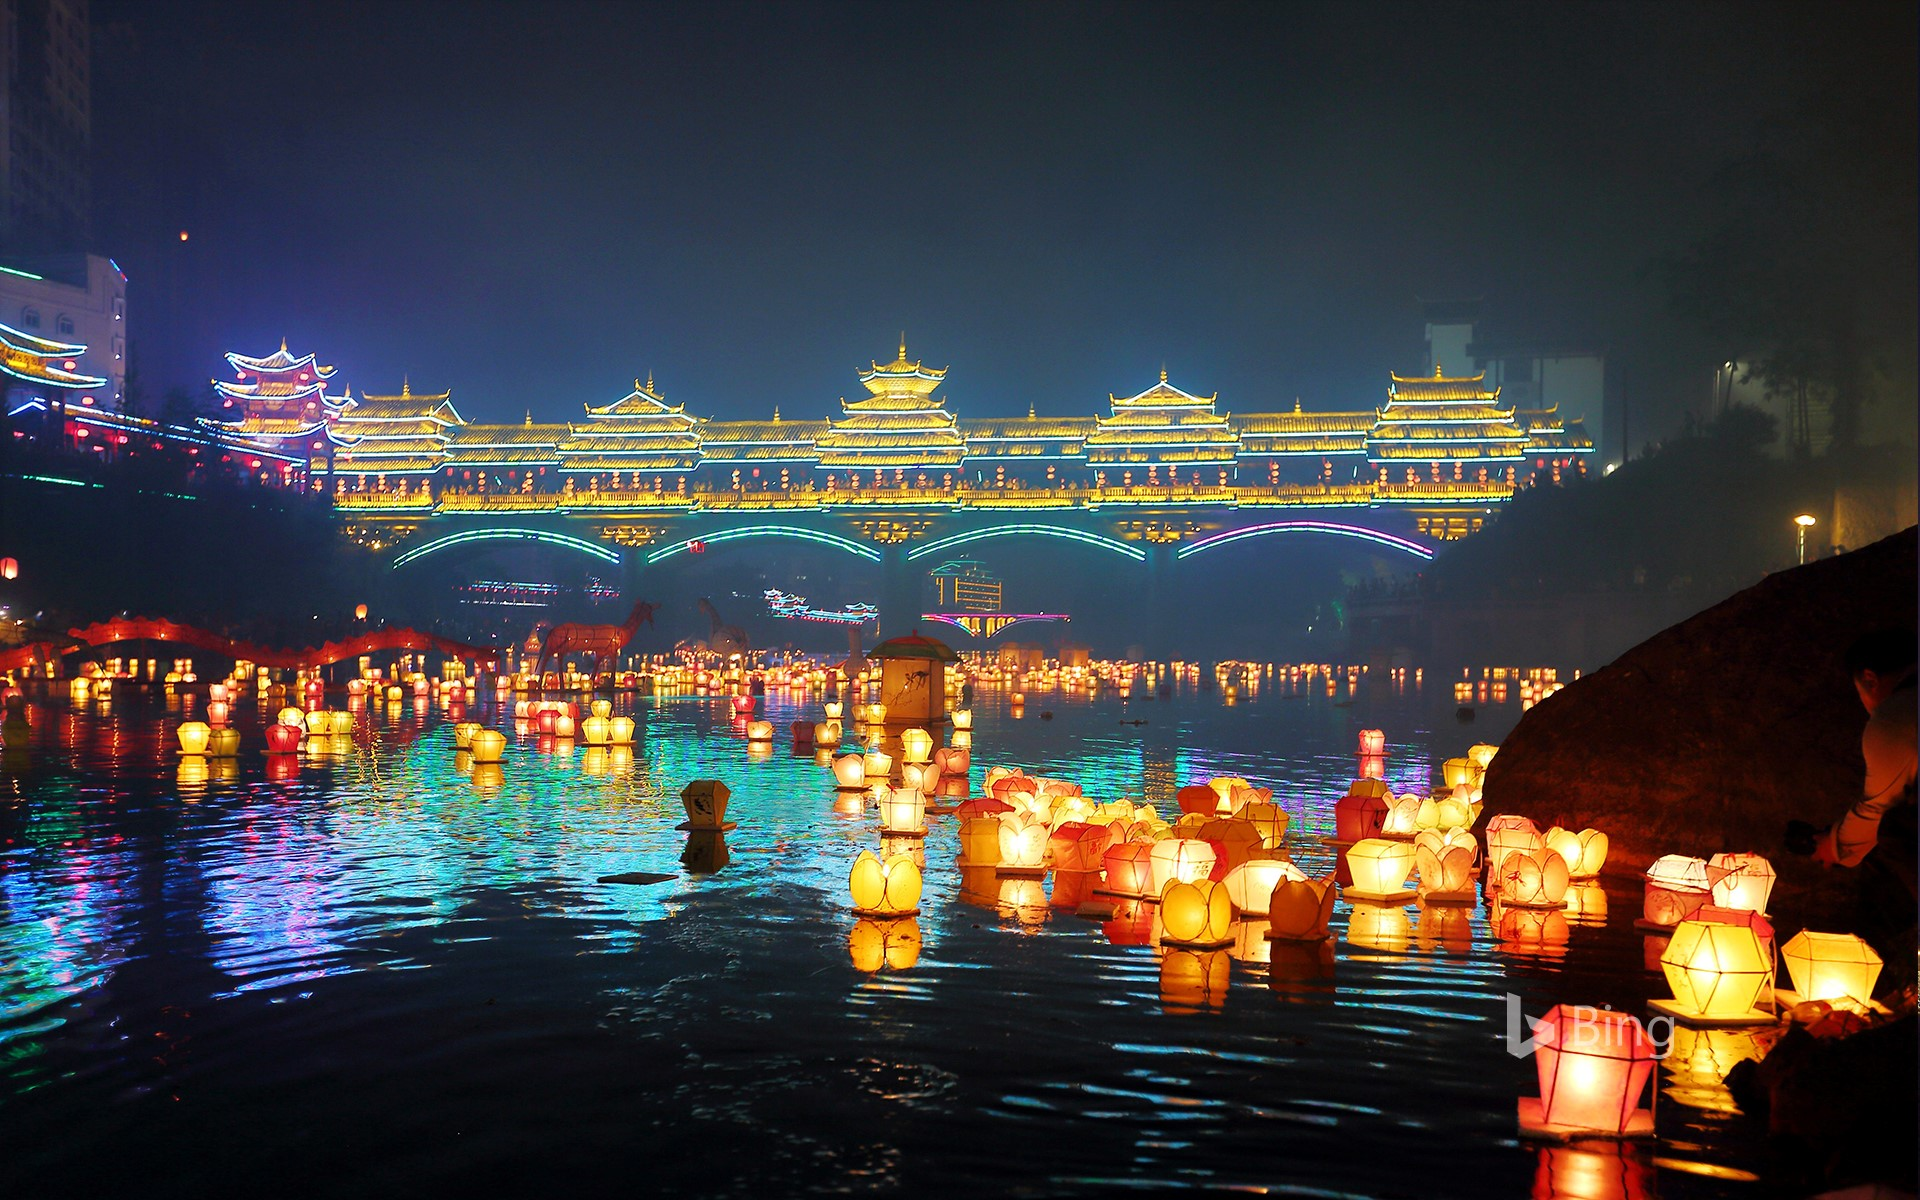 [Today's Chinese New Year Festival] Guilin Chinese New Year Festival Wanzhan River Lights Floating Event, Guangxi, China